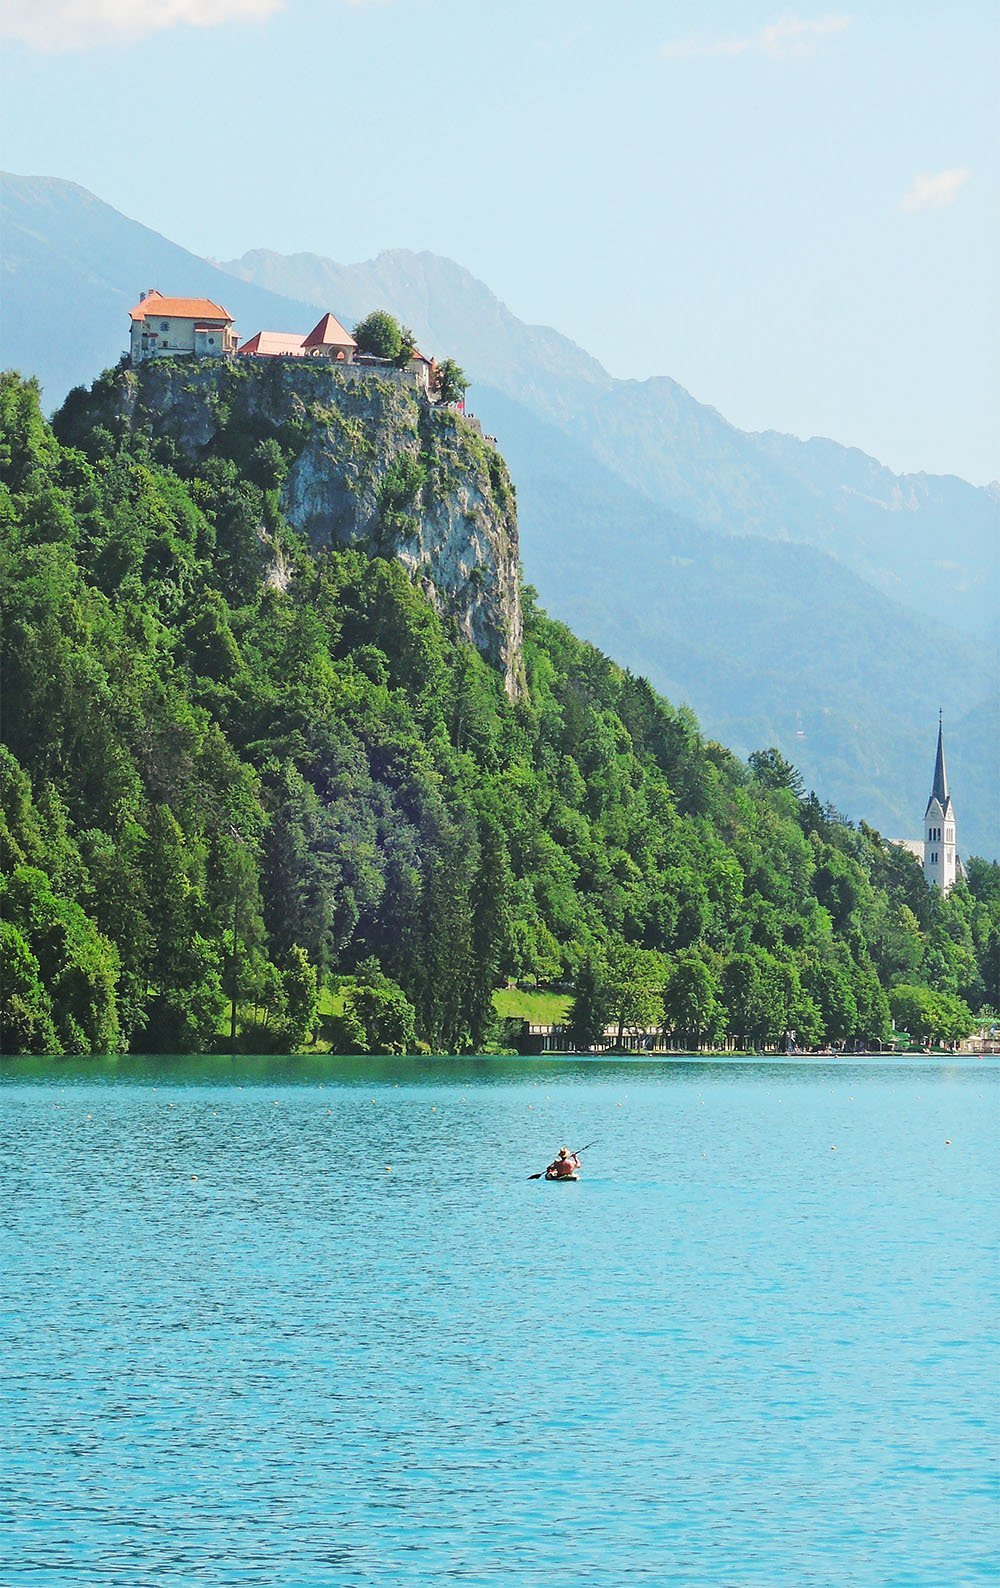 Visit Lake Bled, one of Slovenia's most loved destinations. Enjoy the breathtaking views of the Lake Bled, go for hikes around the Triglav National Park, and explore the beautiful natural landscapes in the area. Here's what to do for 5 days in Slovenia.